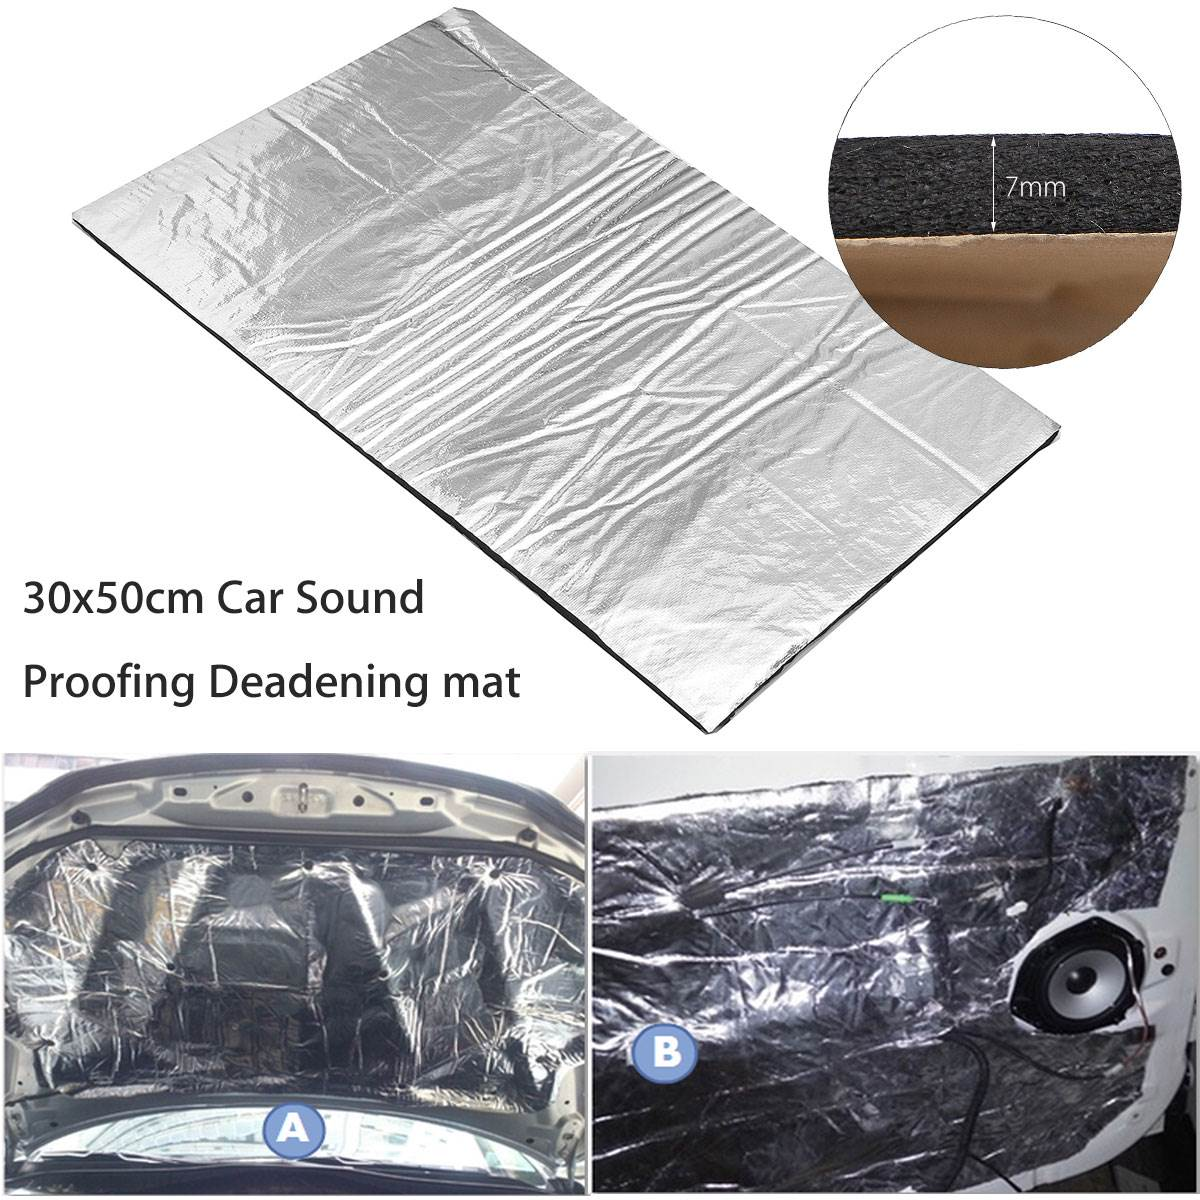 30x50cm Car Glass Fibre Sound Insulation Proofing Deadening 7mm Closed Cell Foam